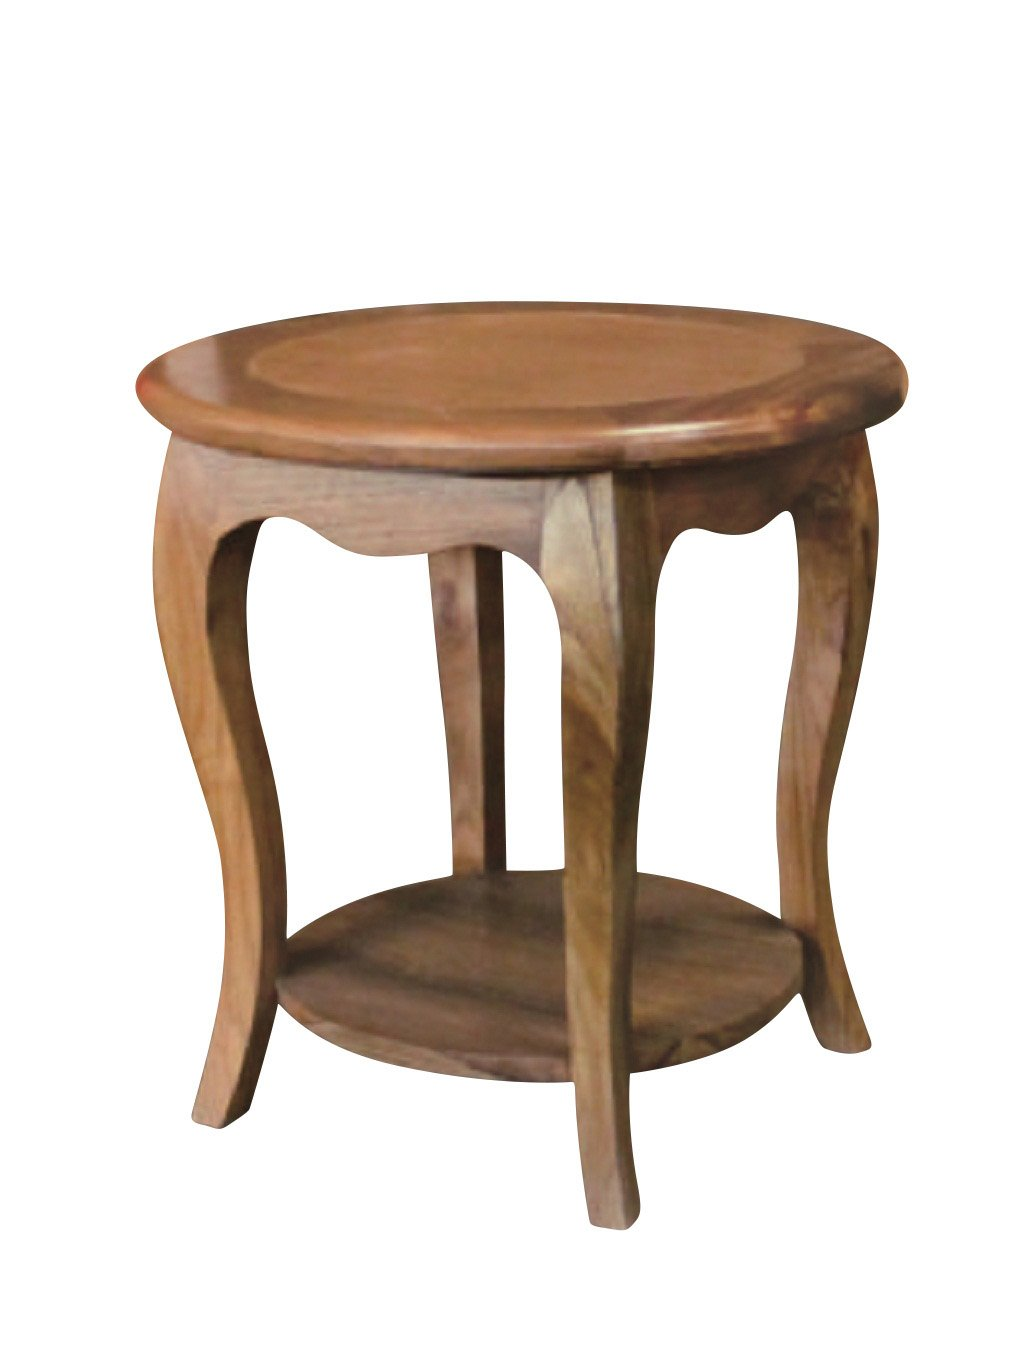 Nes furniture nes fine handcrafted furniture solid teak wood luna side table end table 24 natural amazon co uk kitchen home